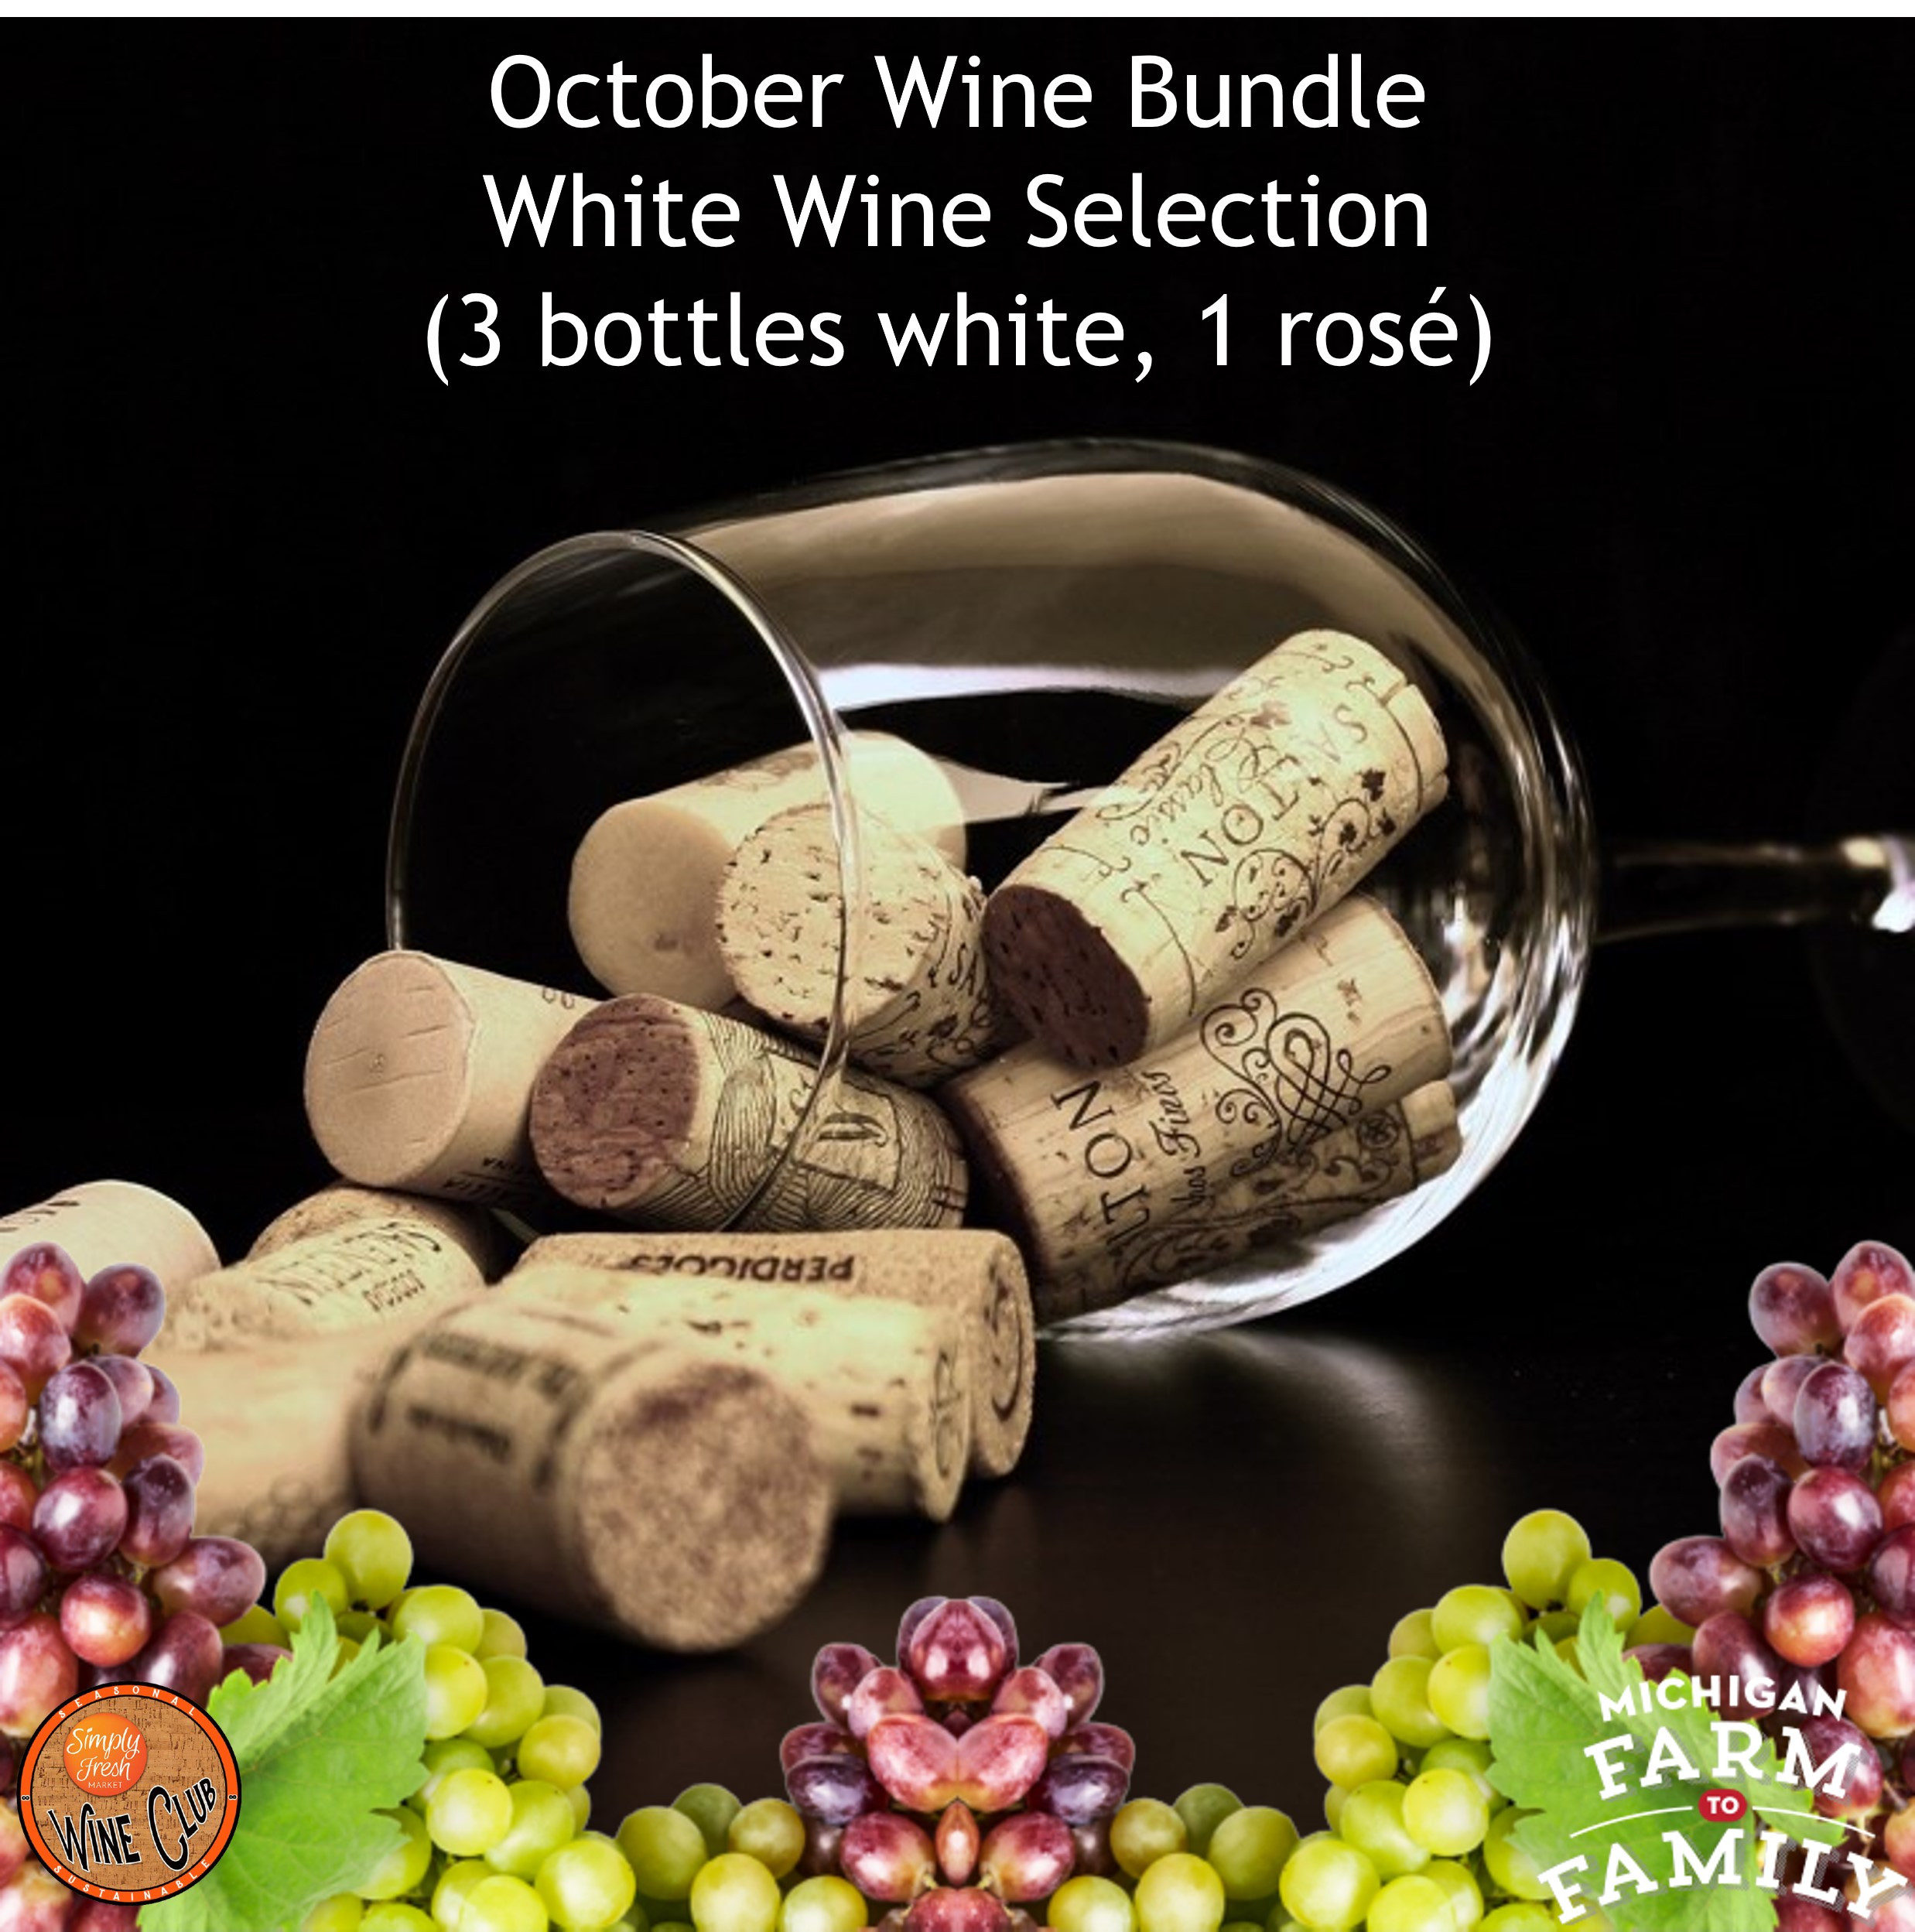 White Wine Bundle - October's Selections